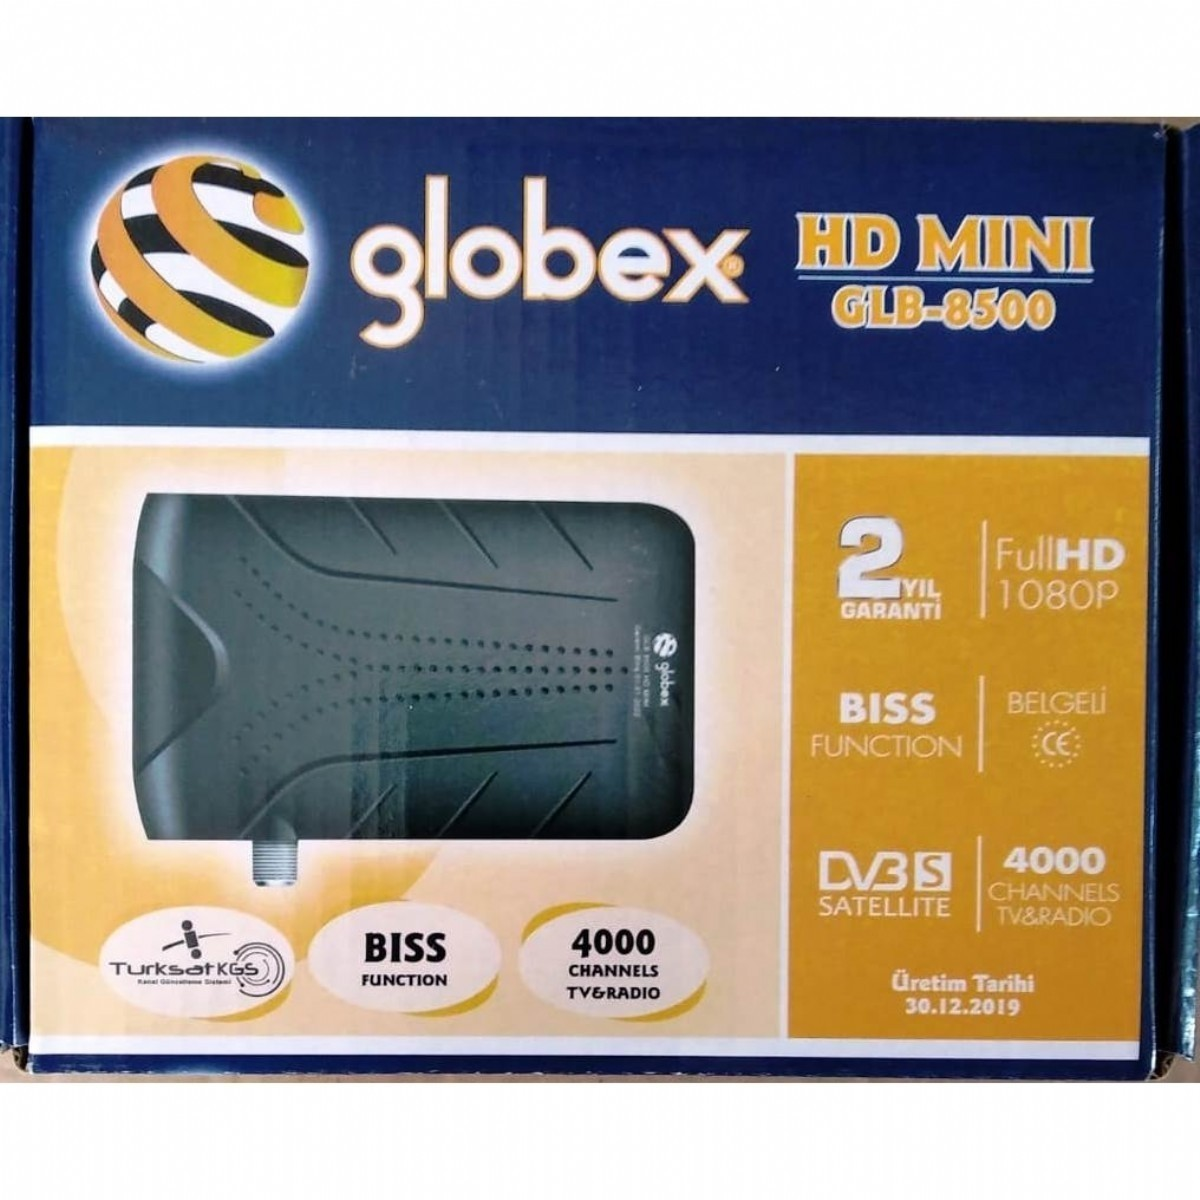 MİNİ HD UYDU | GLOBEX GLB-8500 MİNİ HD UYDU ALICI | GLB-8500 |  |